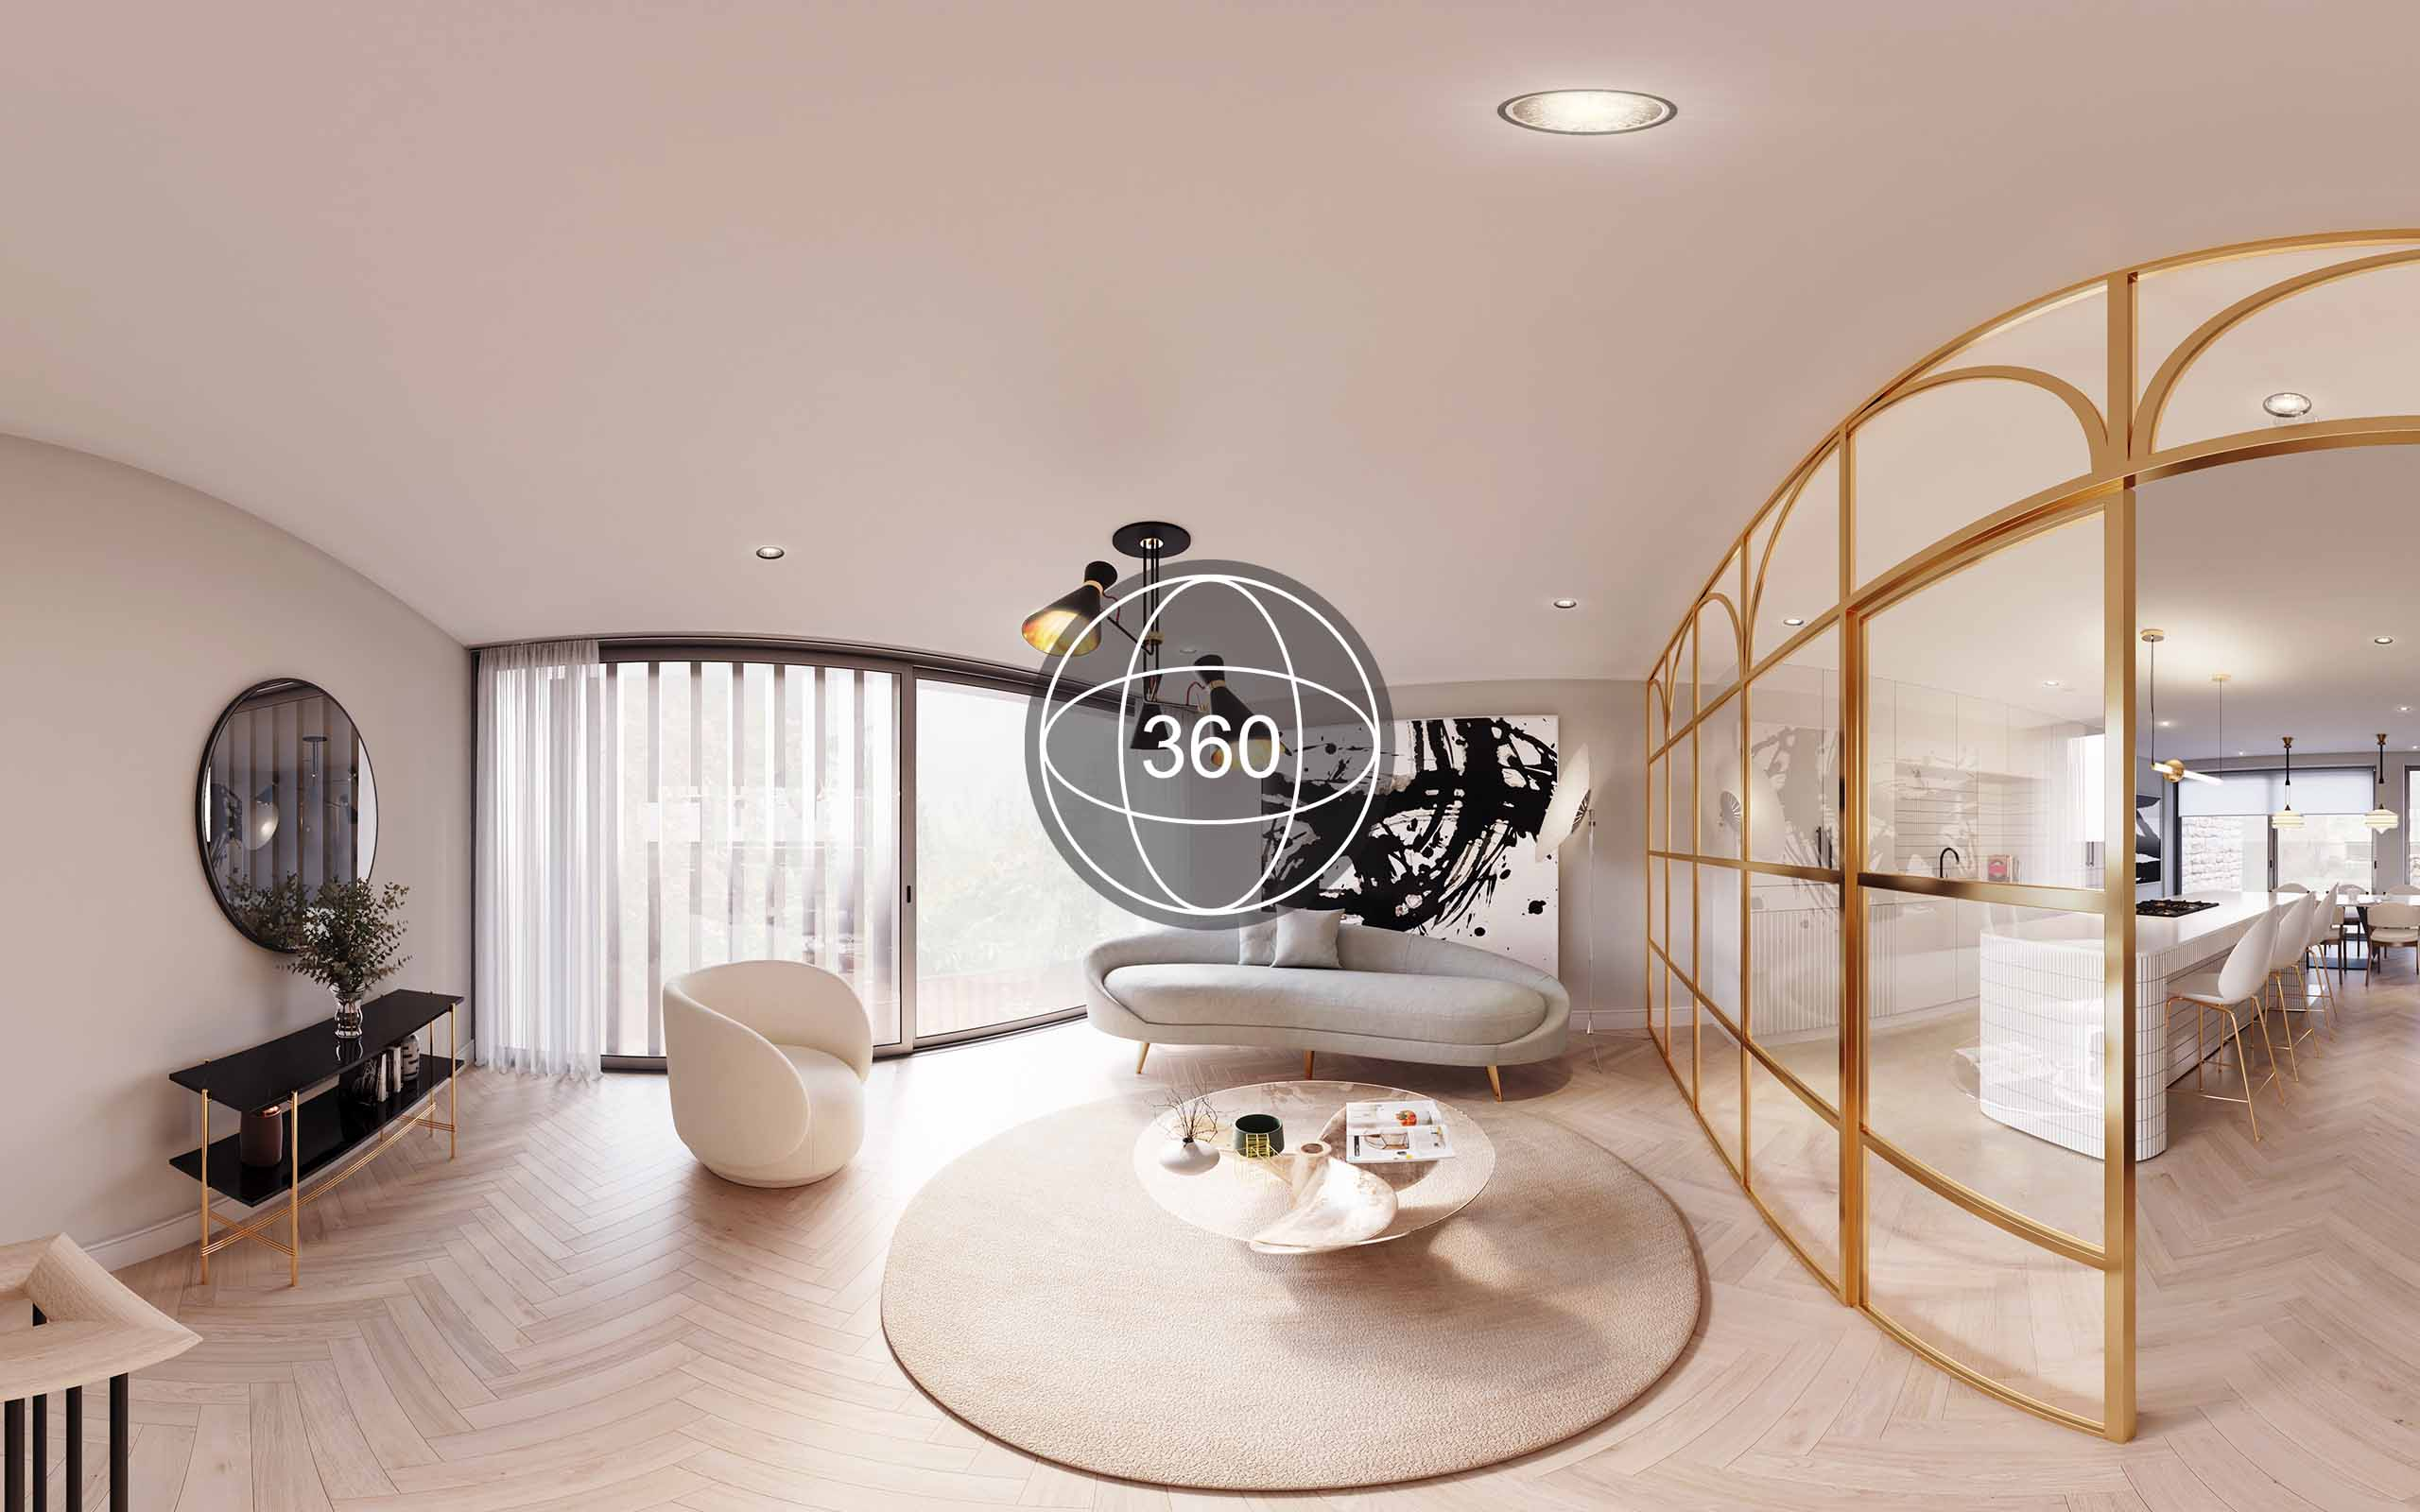 Off plans 360 virtual tour of North Design's interior designs of a housing development in Dalkey.